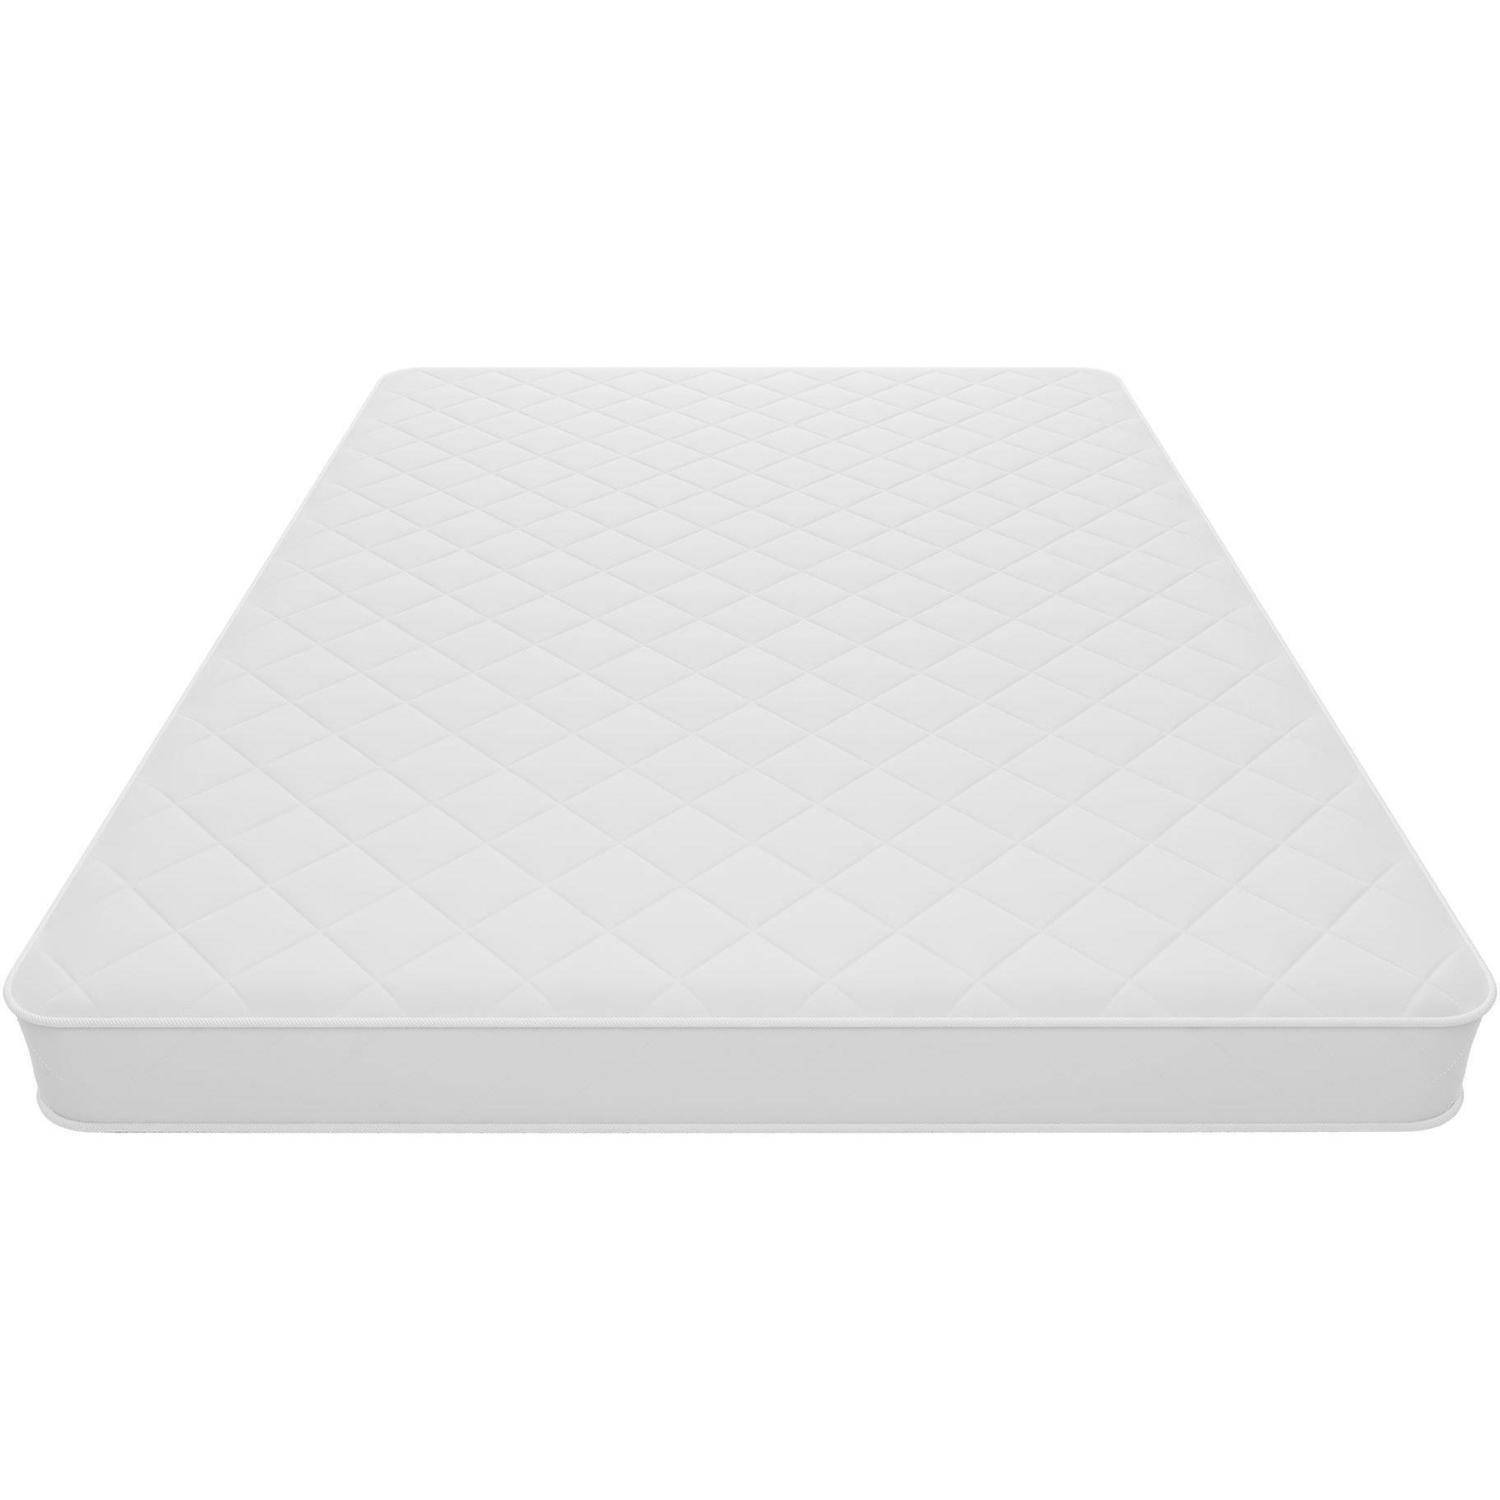 Full size bed mattress foam comfort soft 6 top quality mattress fast shipping ebay Full size foam mattress